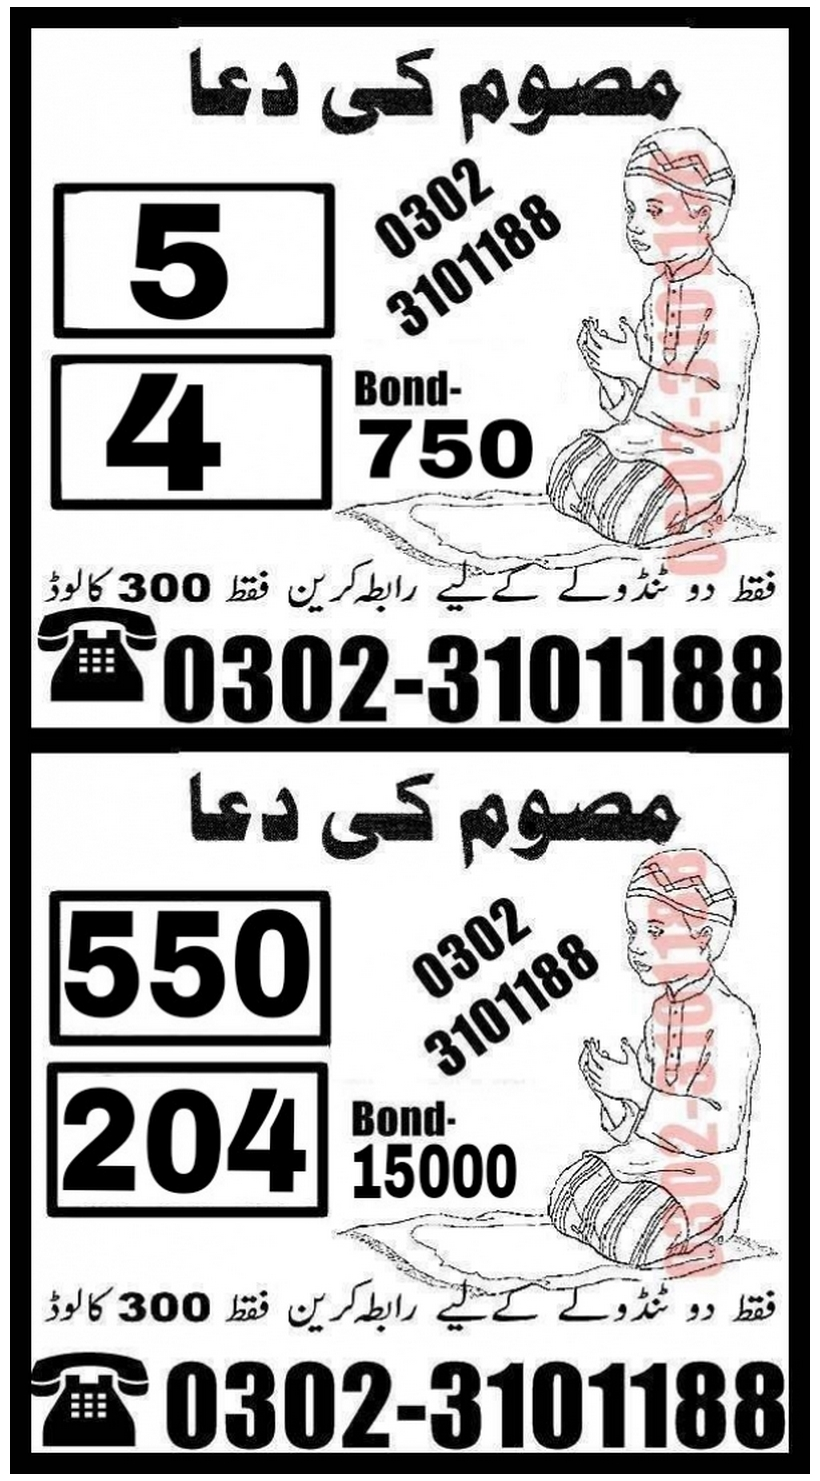 Massom Ki Dua 750 Prize bond Guess Papers 2018